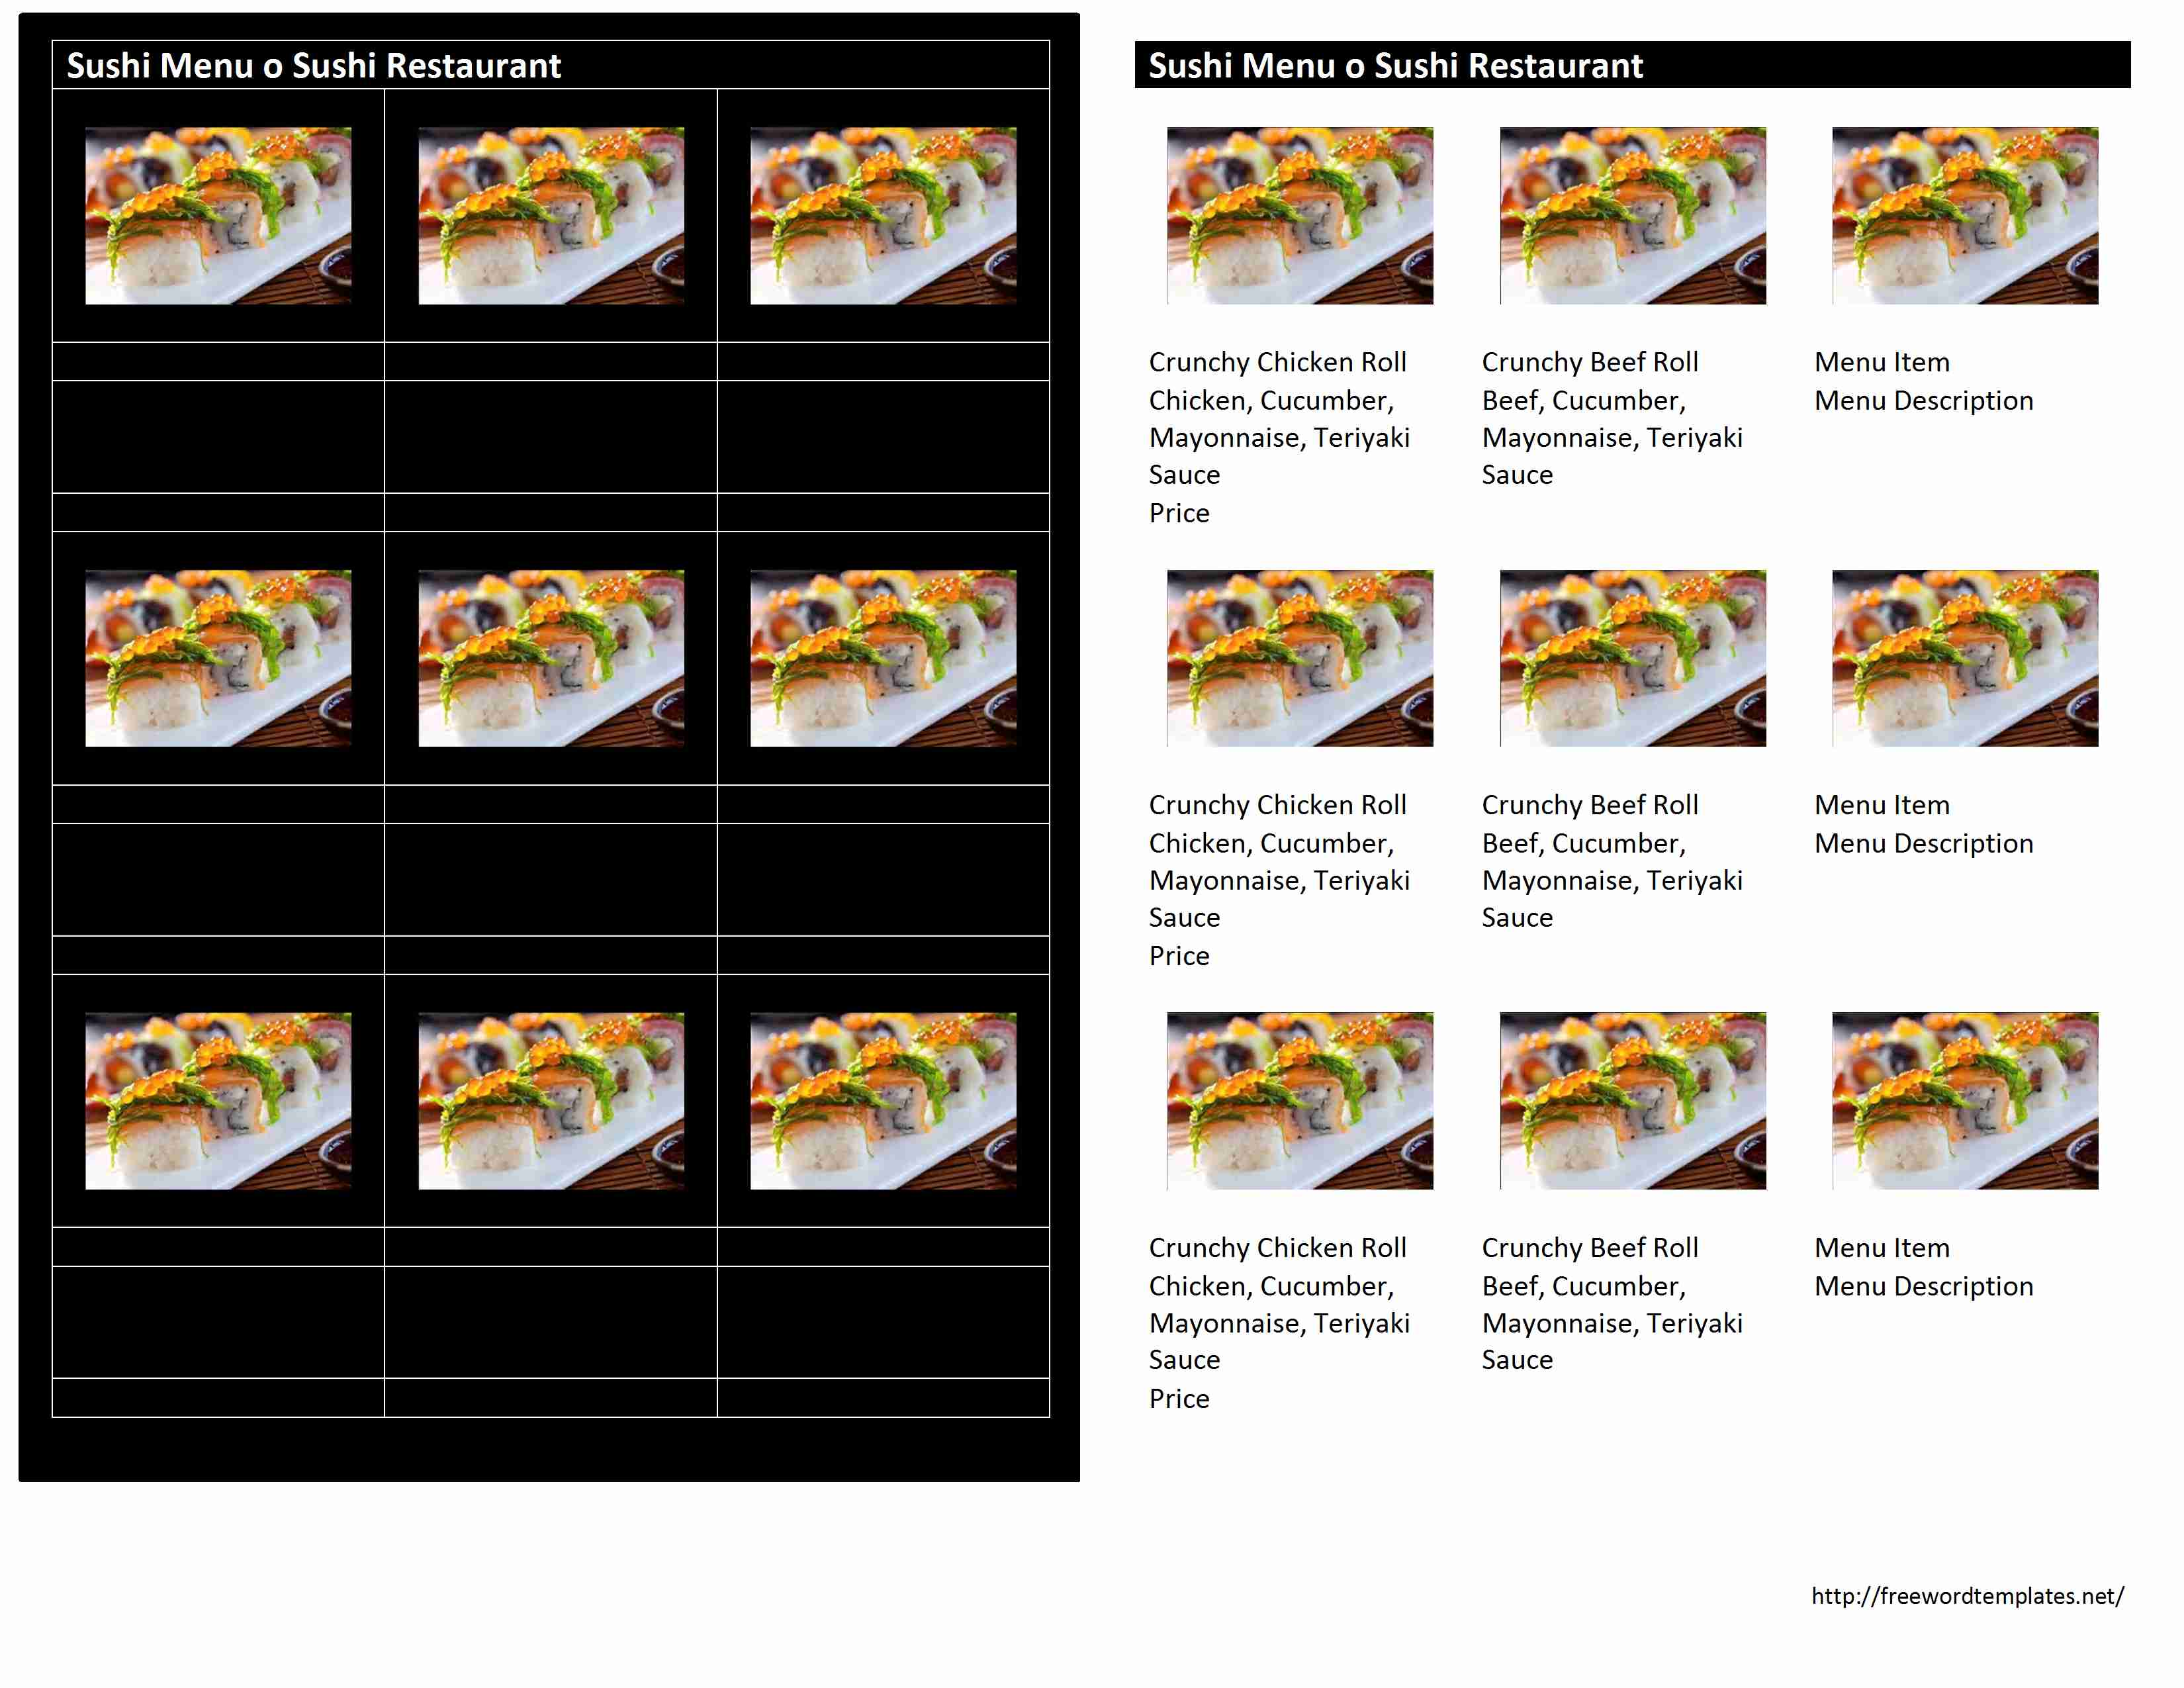 Freewordtemplates.net  Microsoft Word Restaurant Menu Template